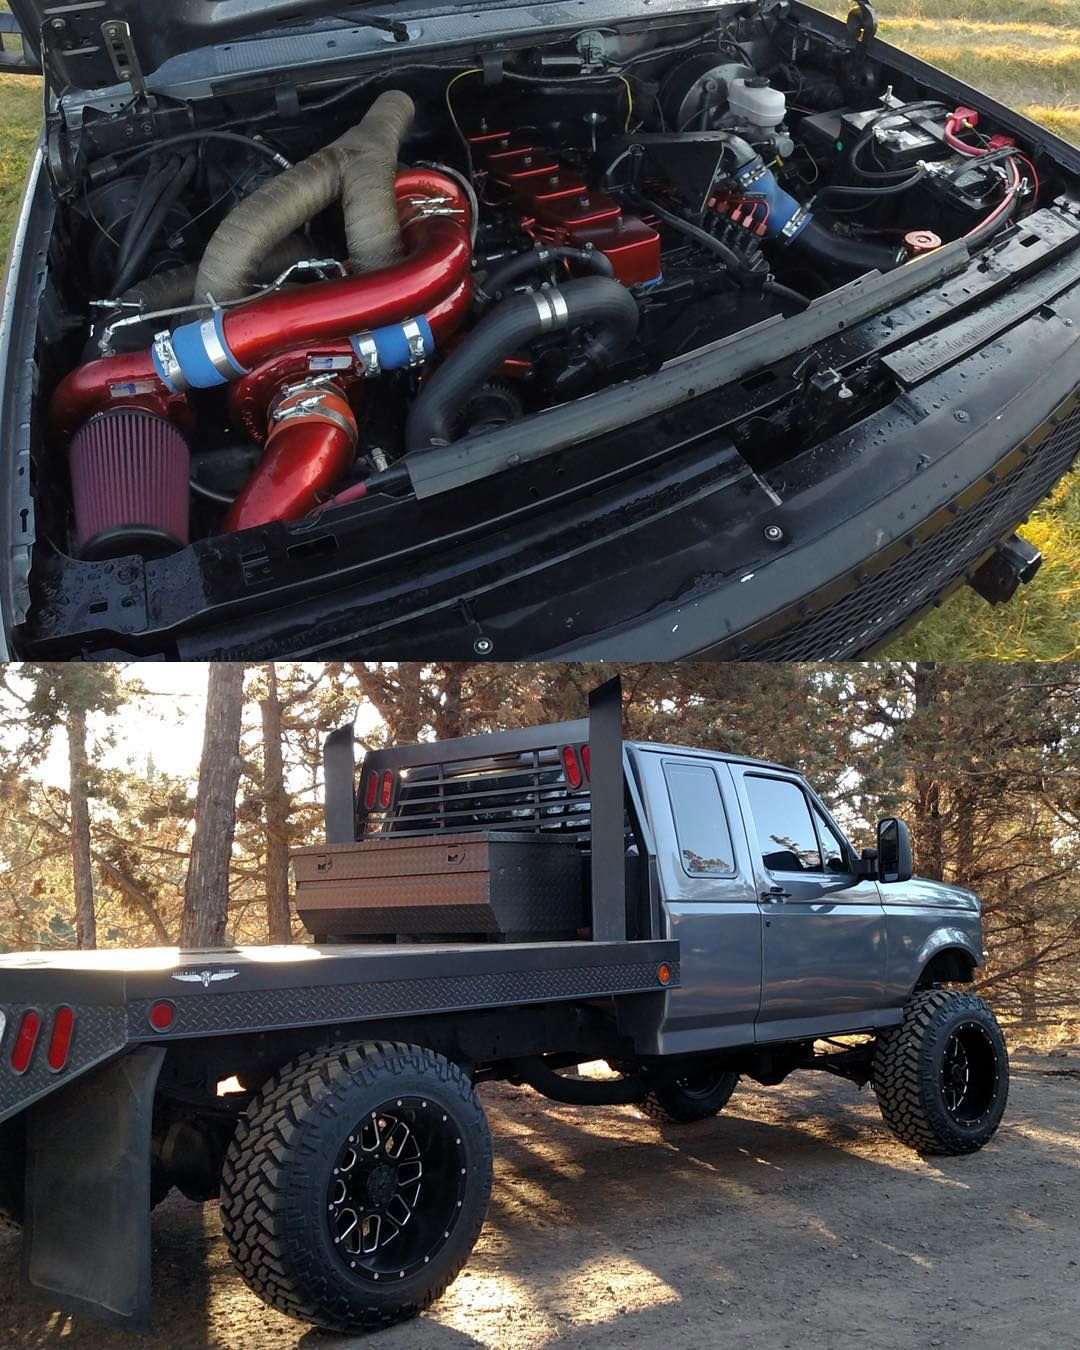 1997 Ford F350 Dually Lifted : dually, lifted, Ideas, Pickup, Trucks,, Diesel, Trucks